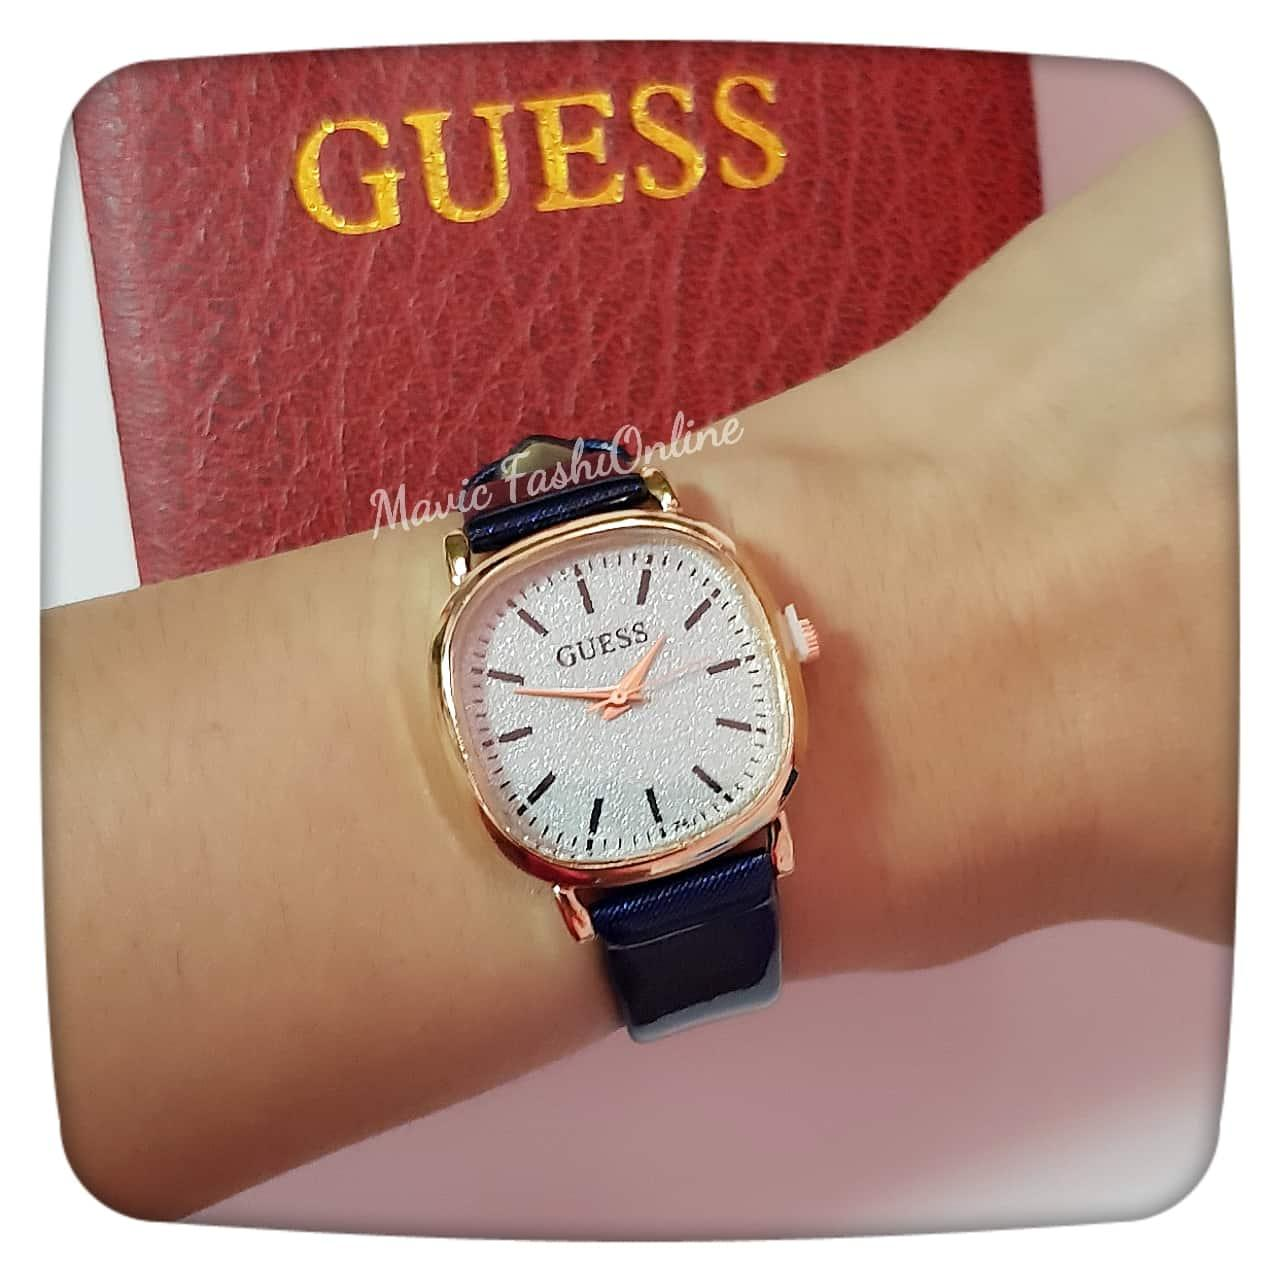 e8b3491d9e3 Guess Philippines  Guess price list - Guess Watch, Perfume   Bag for ...